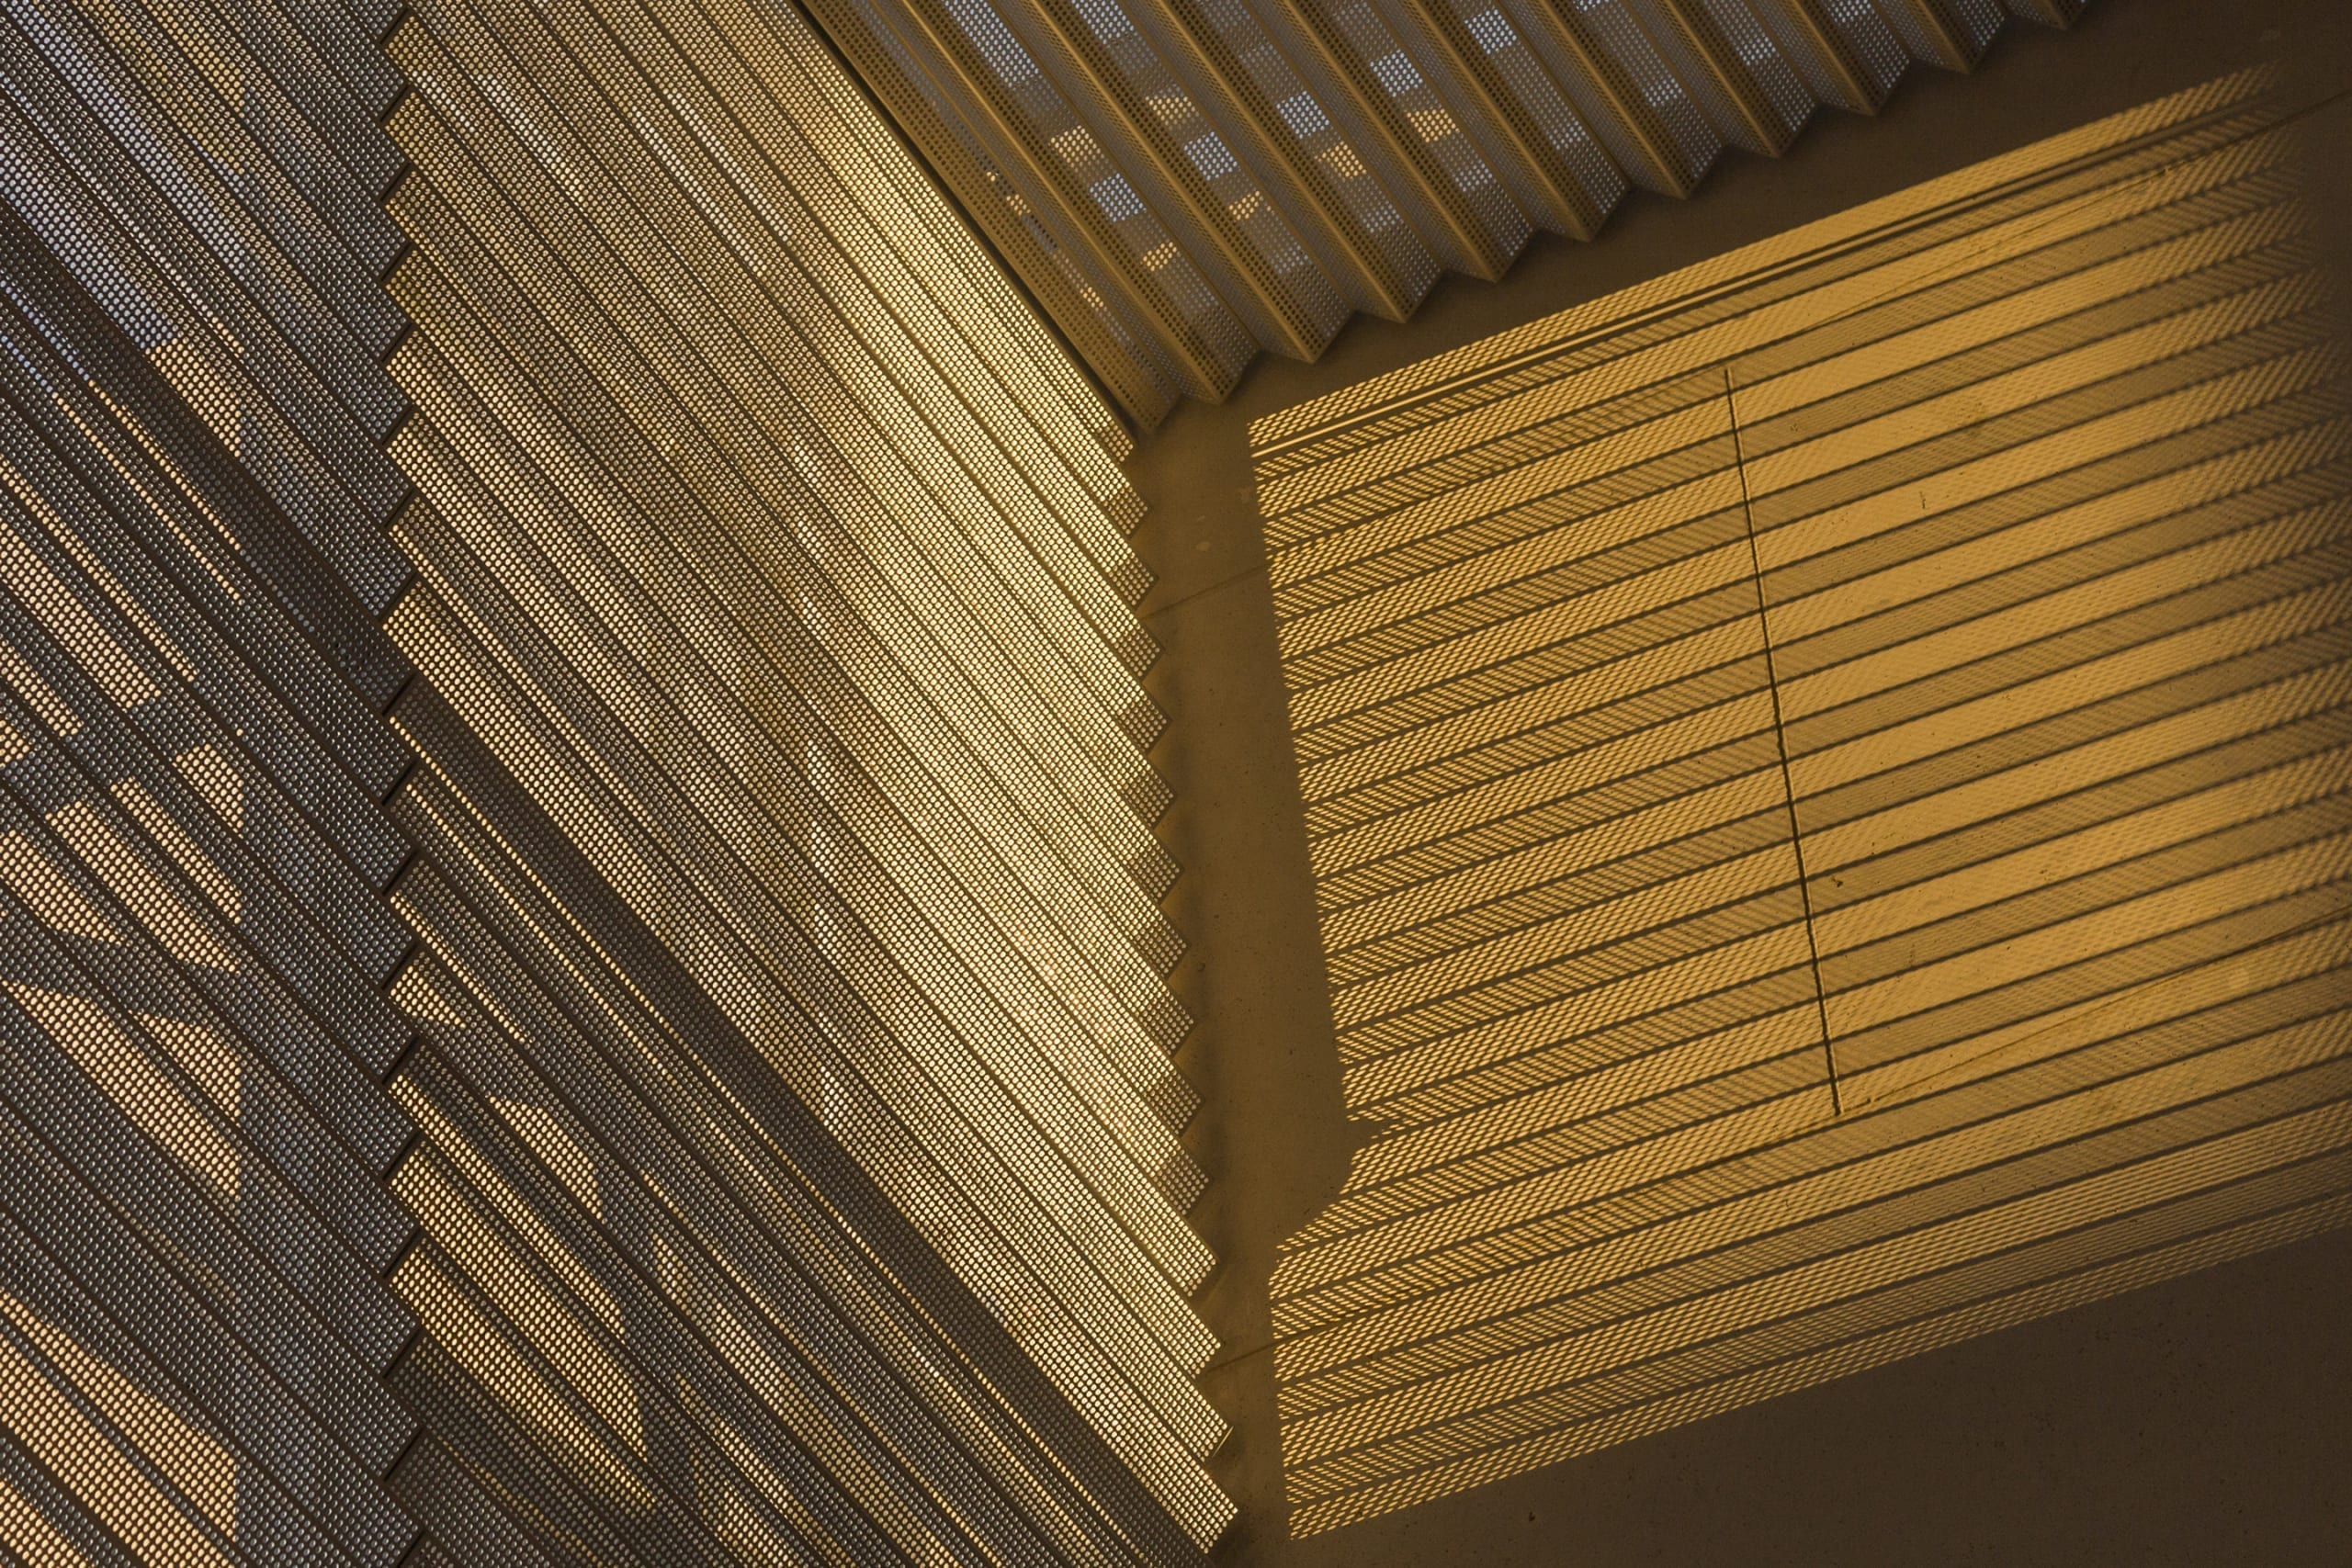 Detail of the argyle shadows cast by folded metal with perforations.